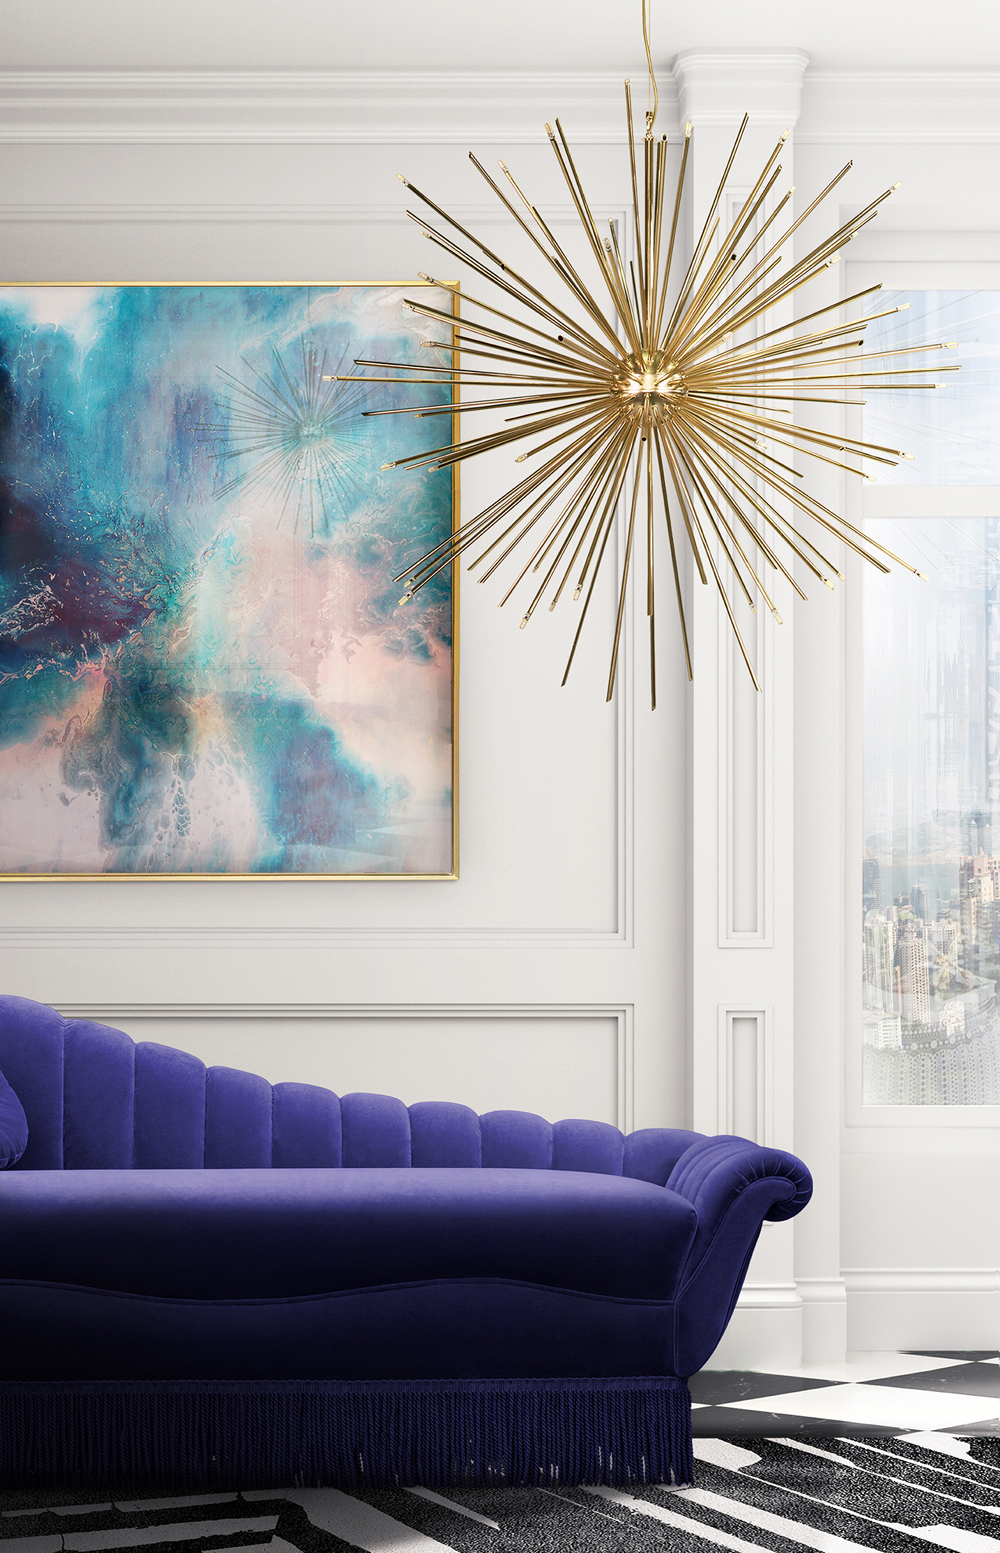 Lighting can change the whole feel of a room, whether that be a rental or your forever home. Here are 5 interior lighting trends set to dominate 2018.